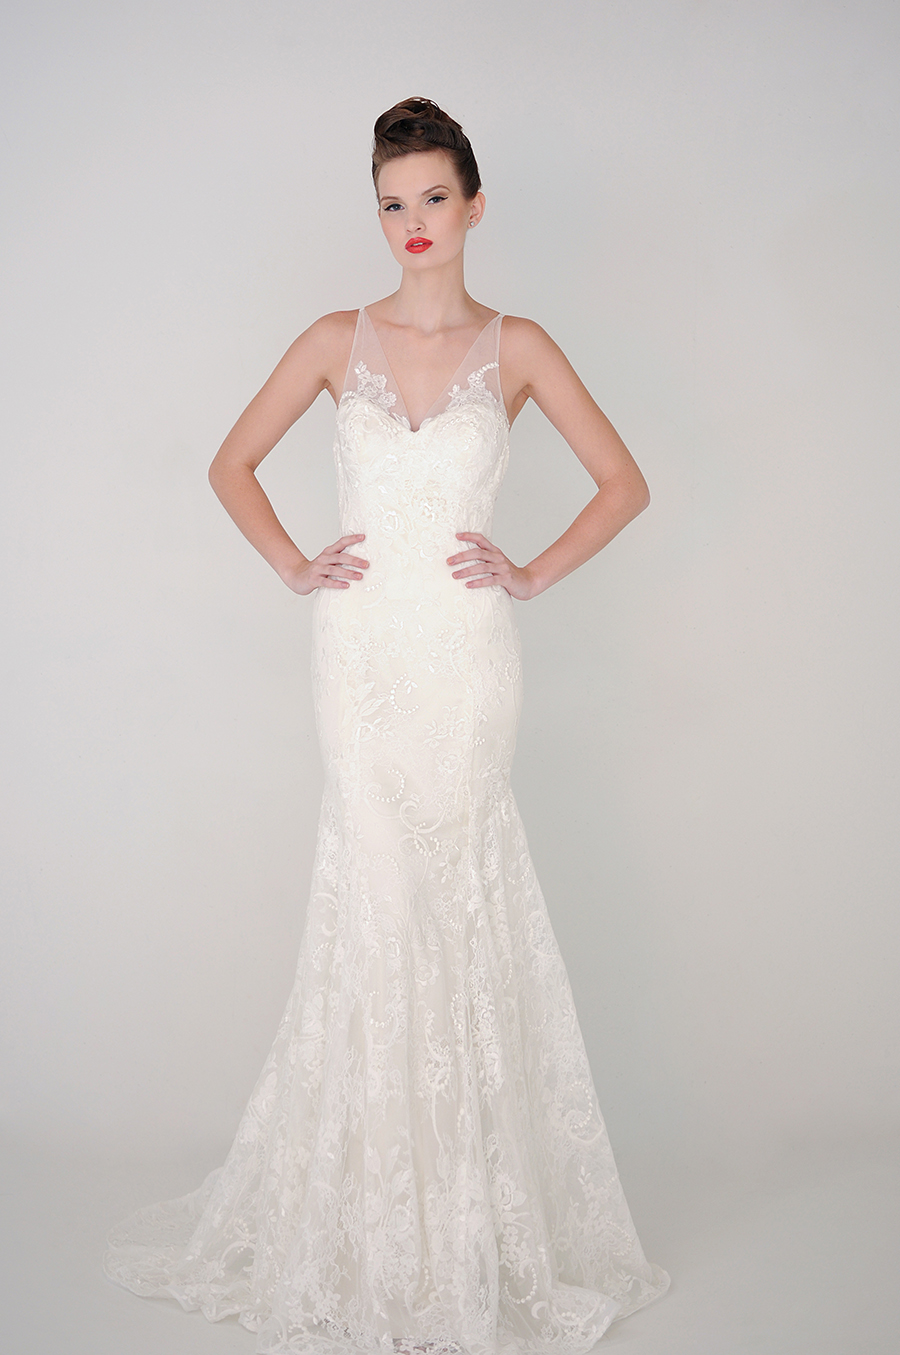 http://www.aislestyle.co.uk/exquisite-sheath-v-neck-lace-patterns-tulle-wedding-dress-p-195.html